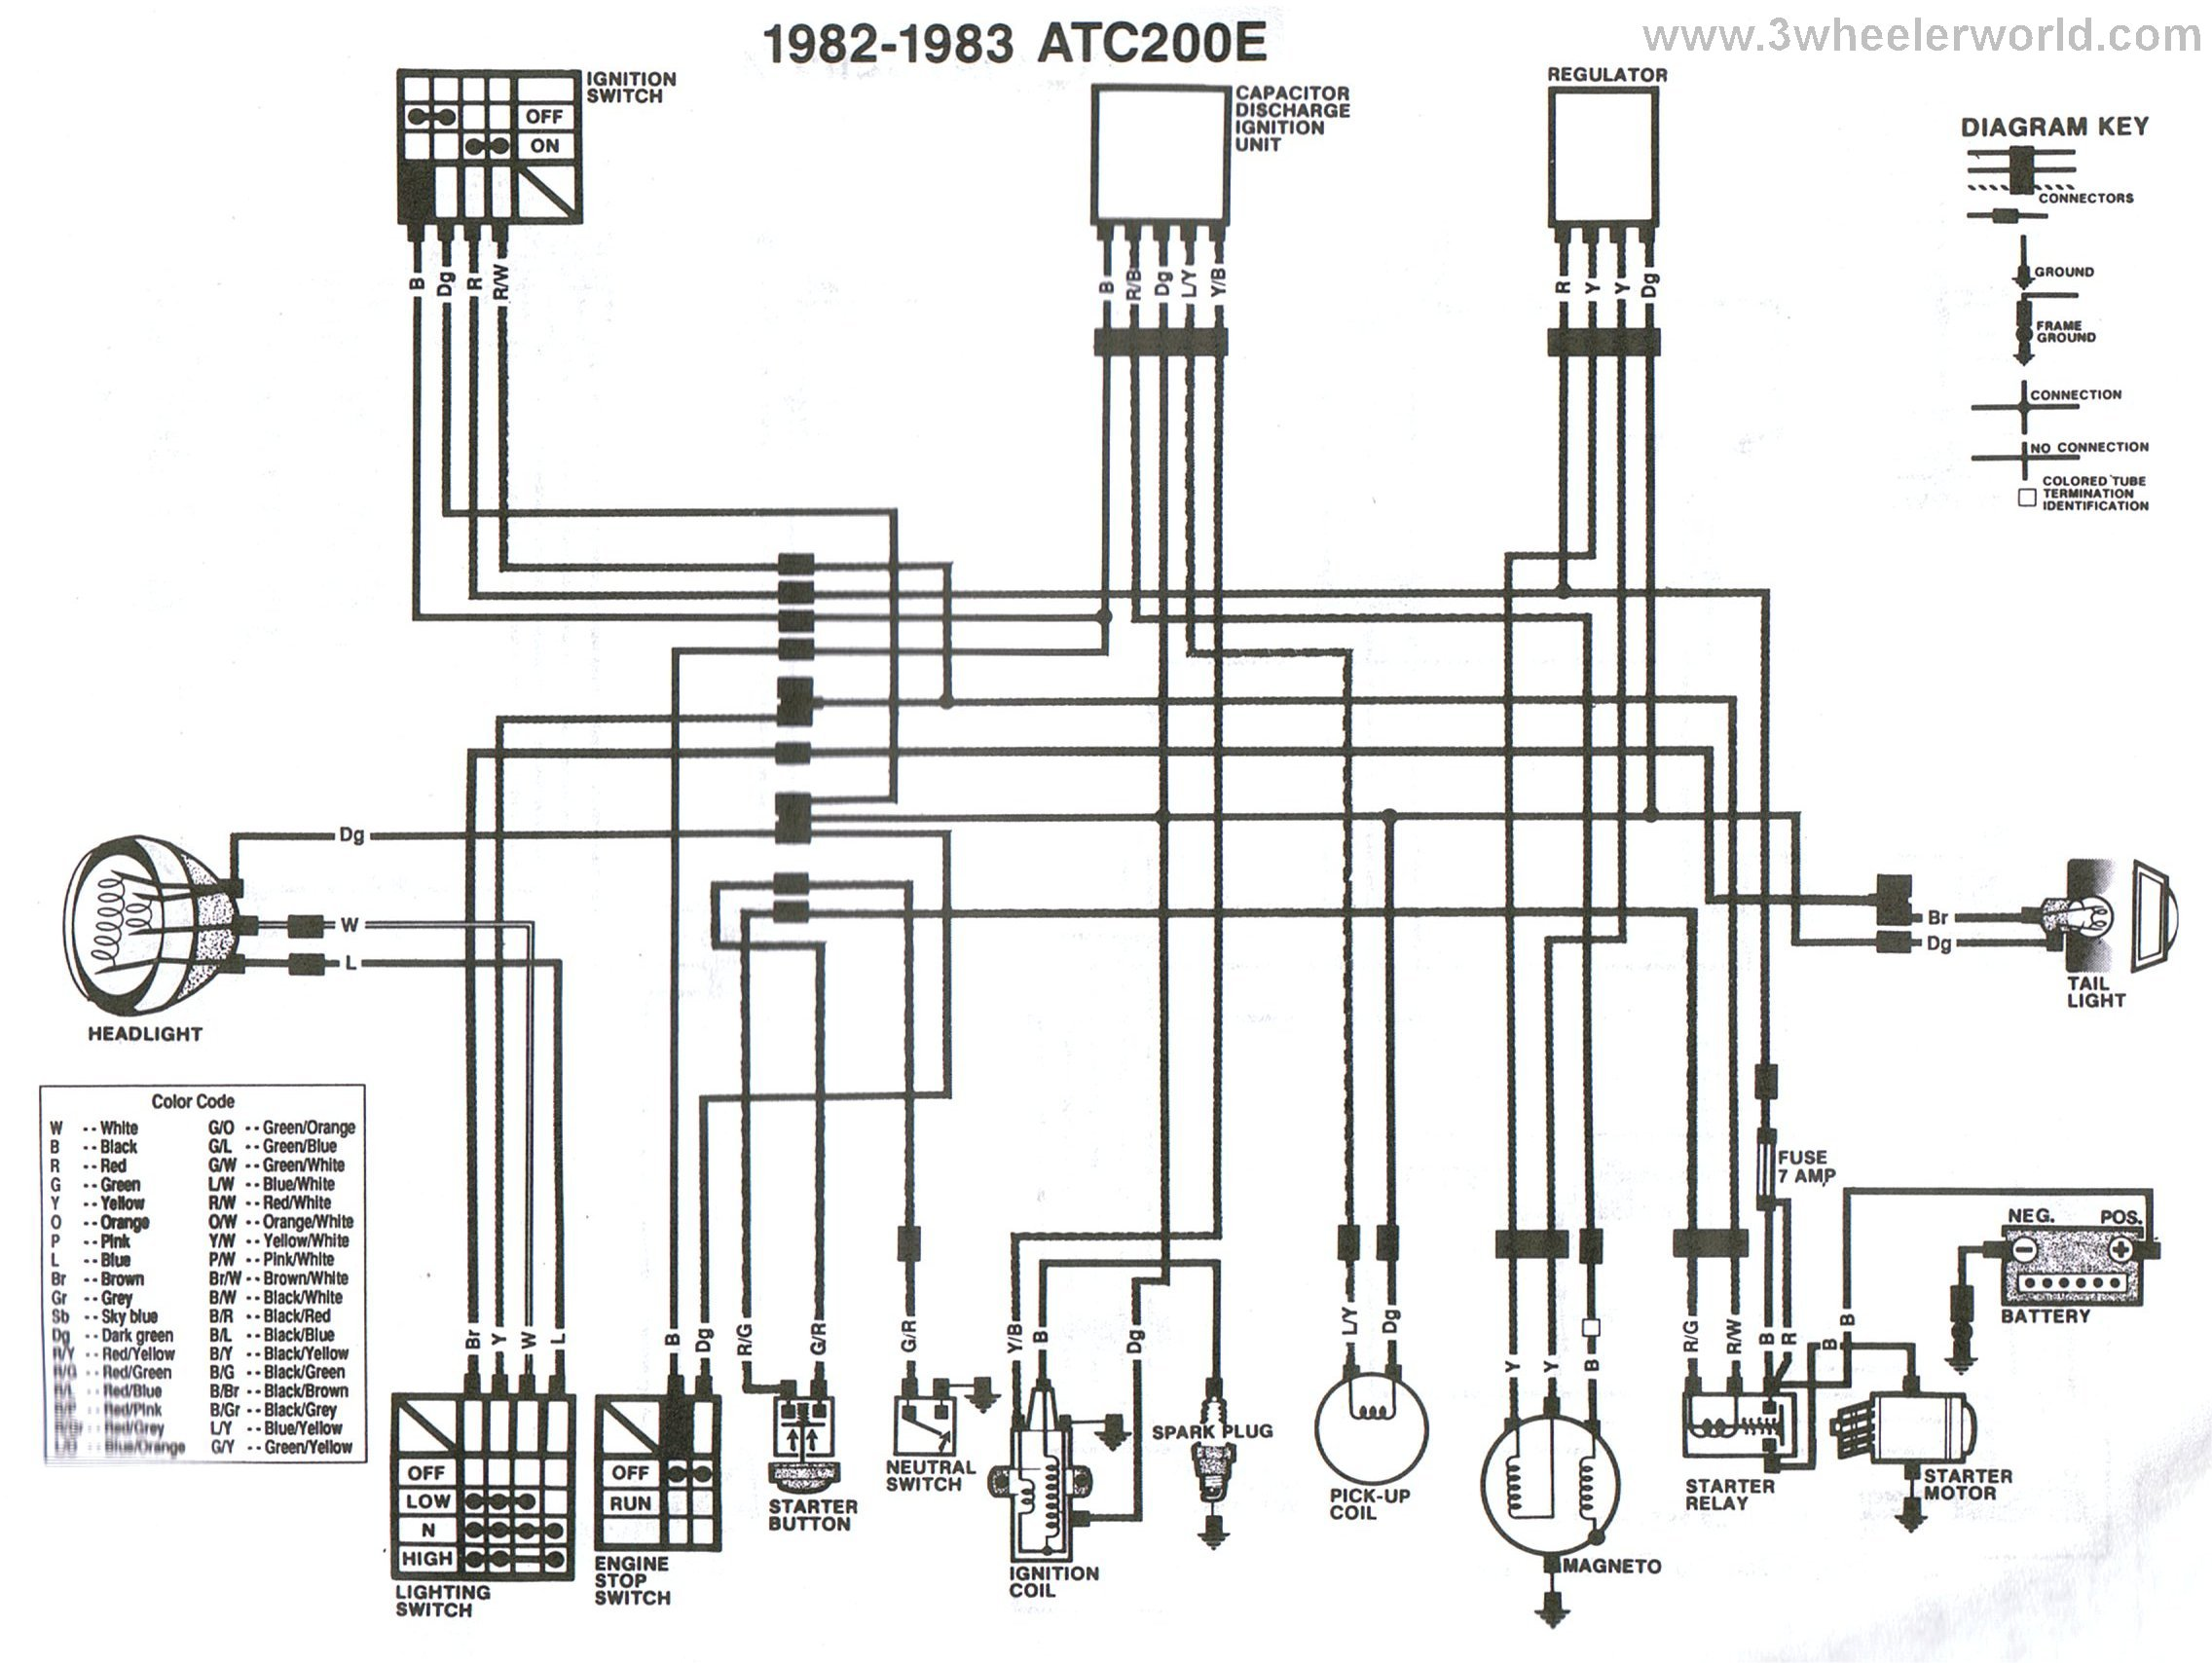 [DIAGRAM_5UK]  54C43B9 Honda Atc 200x Wiring Diagram | Wiring Resources | 200x Wiring Diagram |  | Wiring Resources